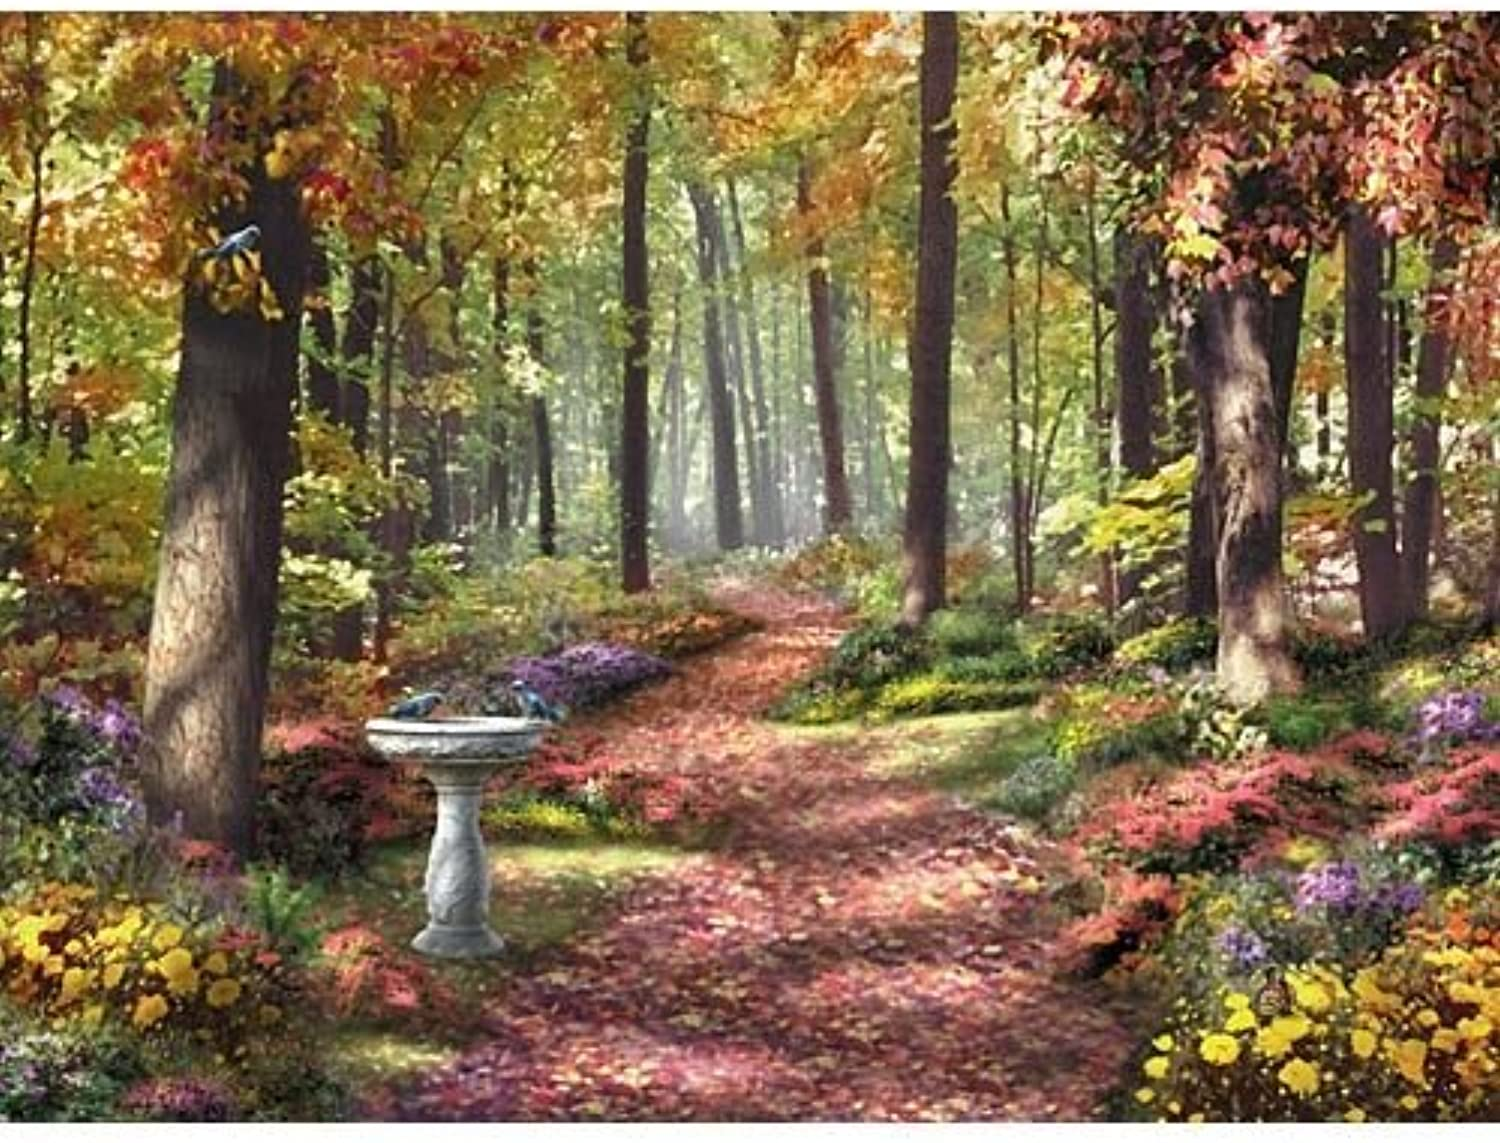 Bits and Pieces - 1000 Piece Jigsaw Puzzle - The Path In the Forest, Autumn Nature - by Artist Alan Giana - 1000 pc Jigsaw